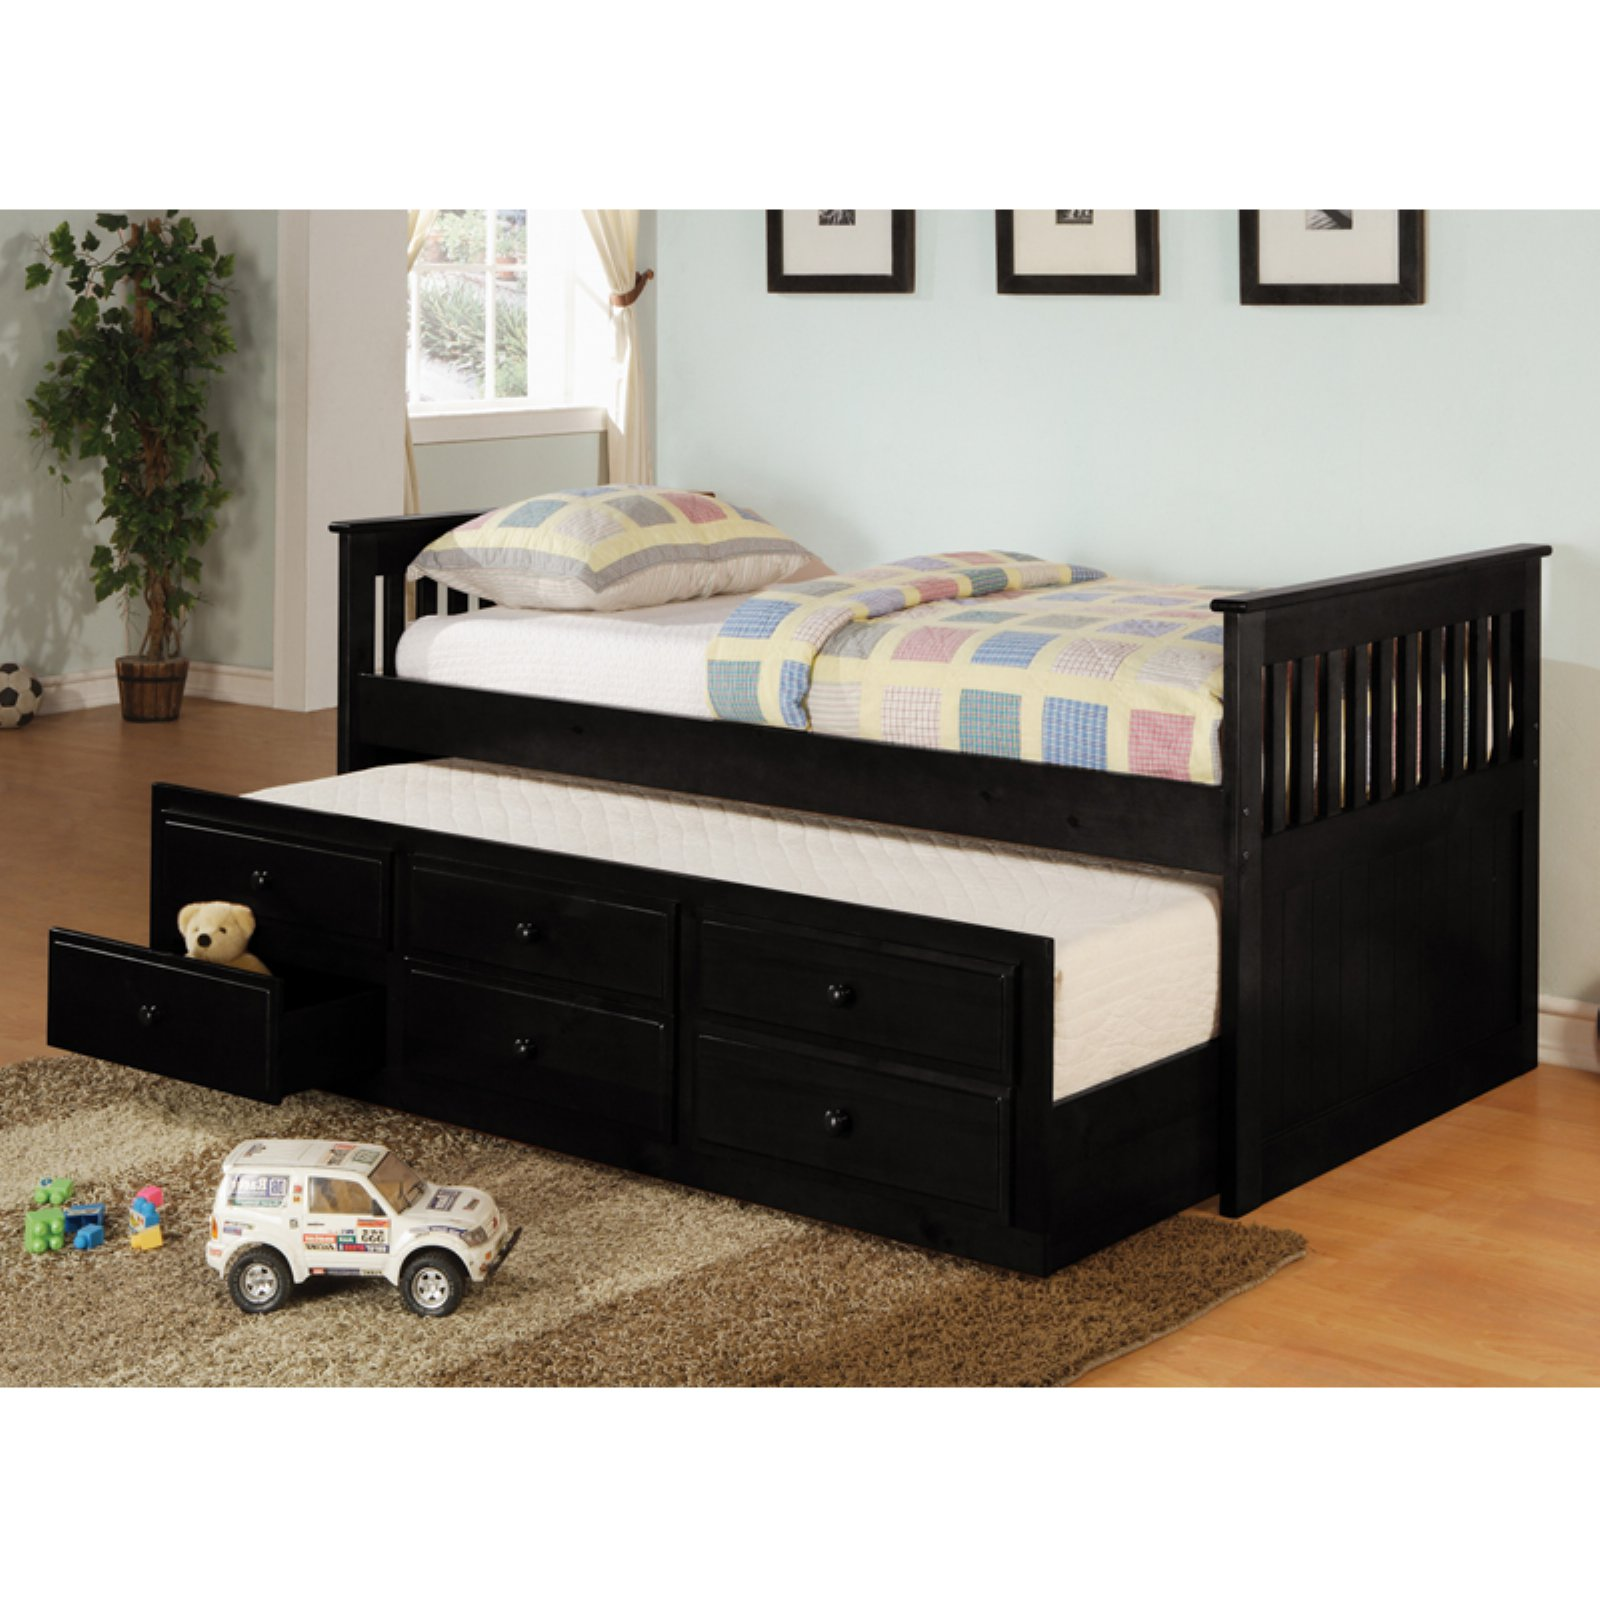 Coaster Furniture La Salle Twin Captains Bed with Trundle and Storage Drawers